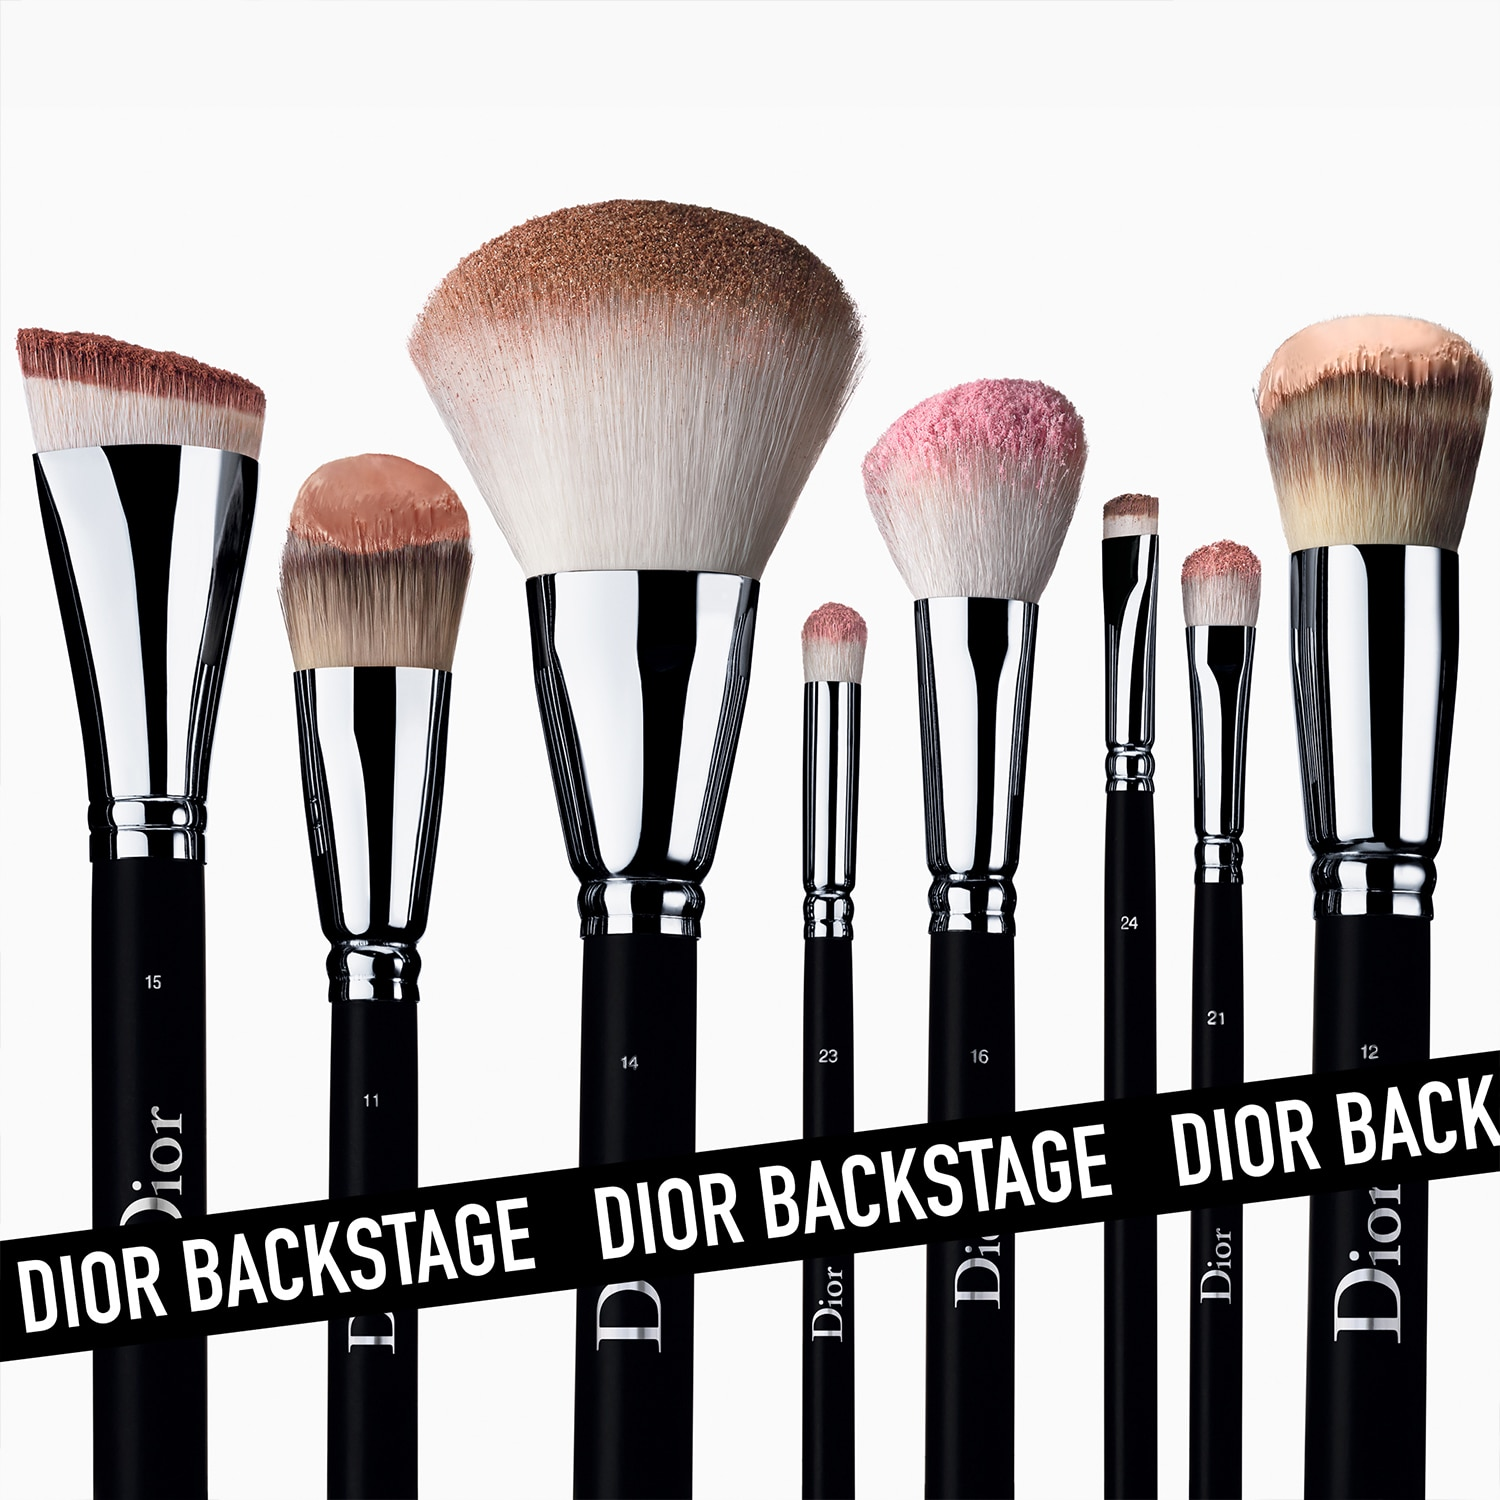 DIOR BACKSTAGE SMALL SMUDGING BRUSH NO. 22